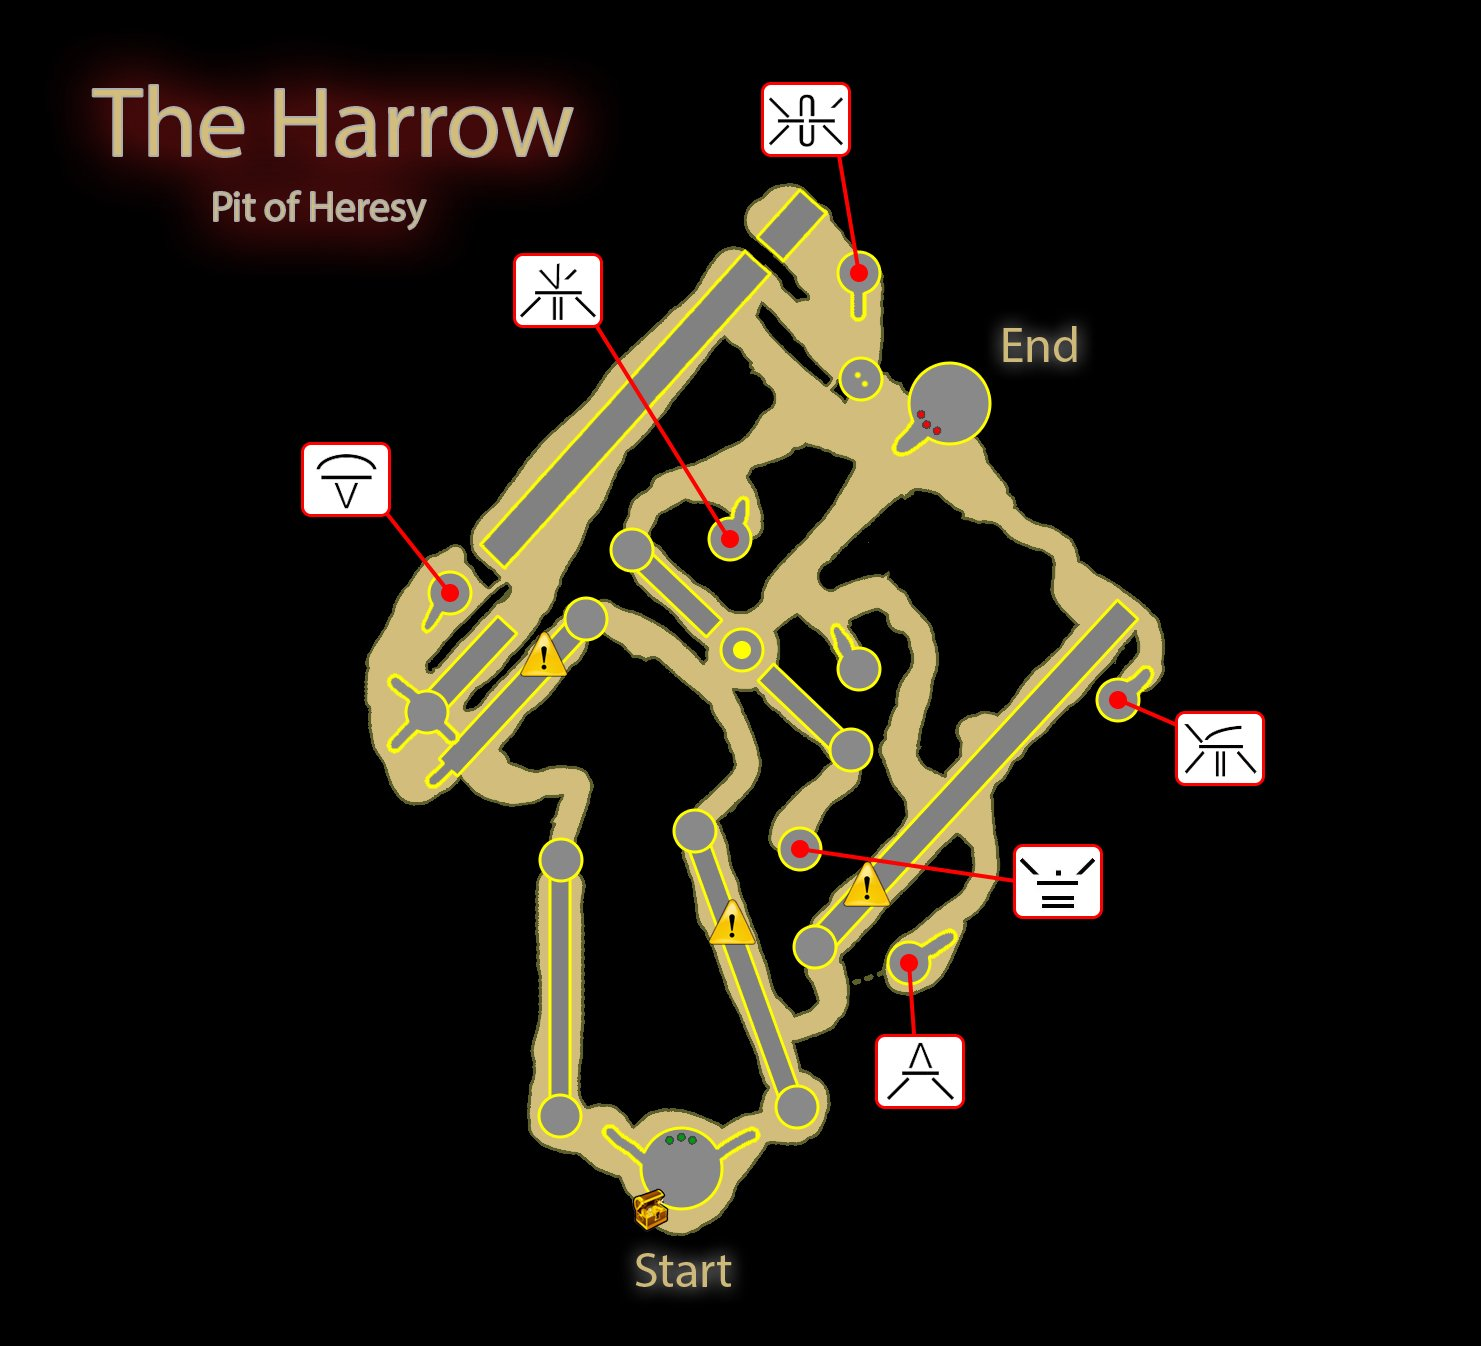 The Harrow map